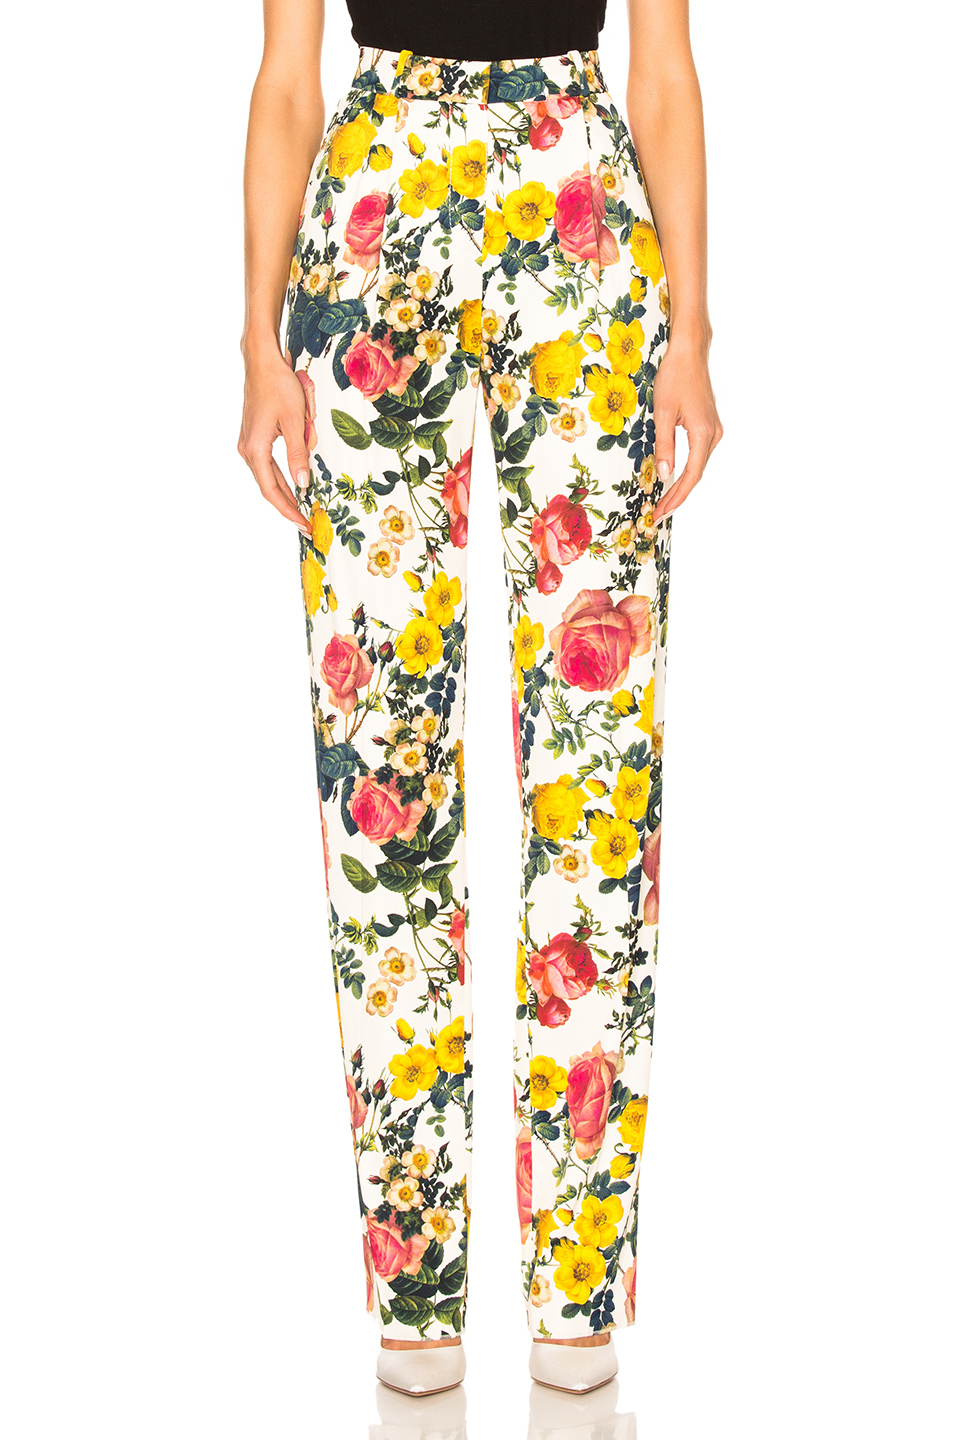 Fausto Puglisi Pant in Floral,White